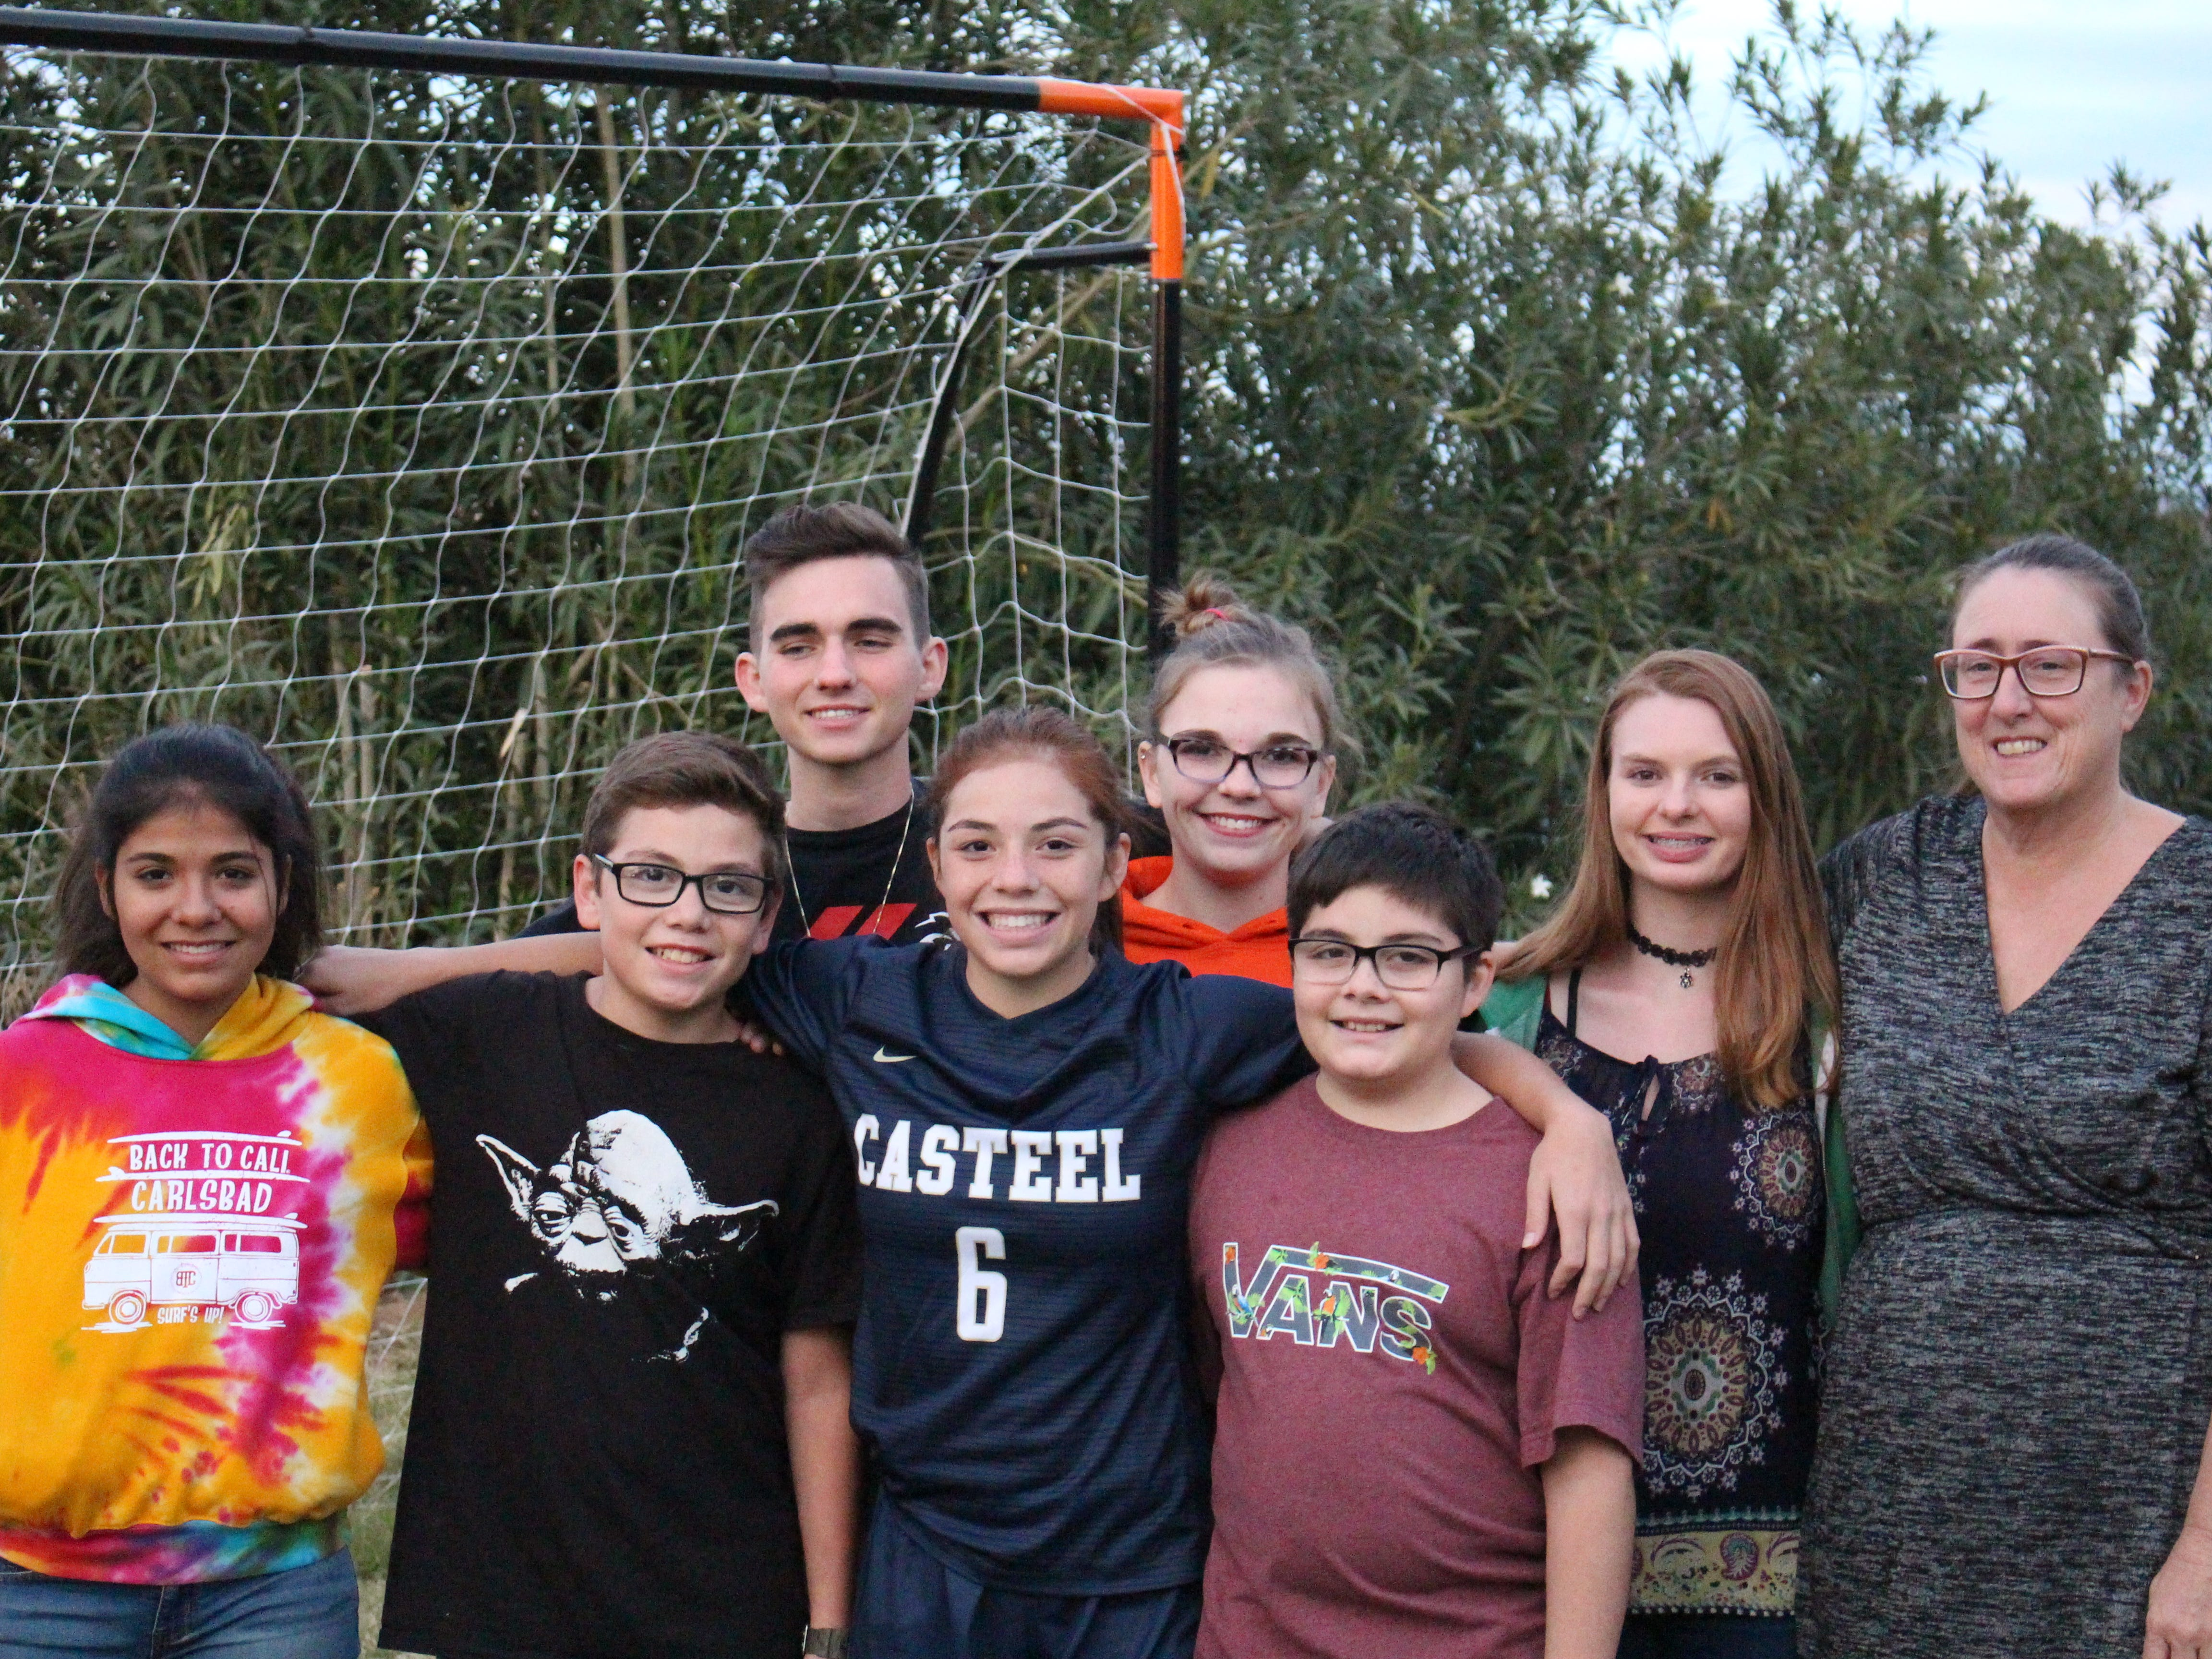 Casteel's Scarlett Frohardt's family (from back row left to right) Connor, Charlotte, Sierra, Laura, (front row left to right) Colette, Cooper, Scarlett and Cannon gather around outside on Wednesday in Queen Creek on Nov. 14, 2018.